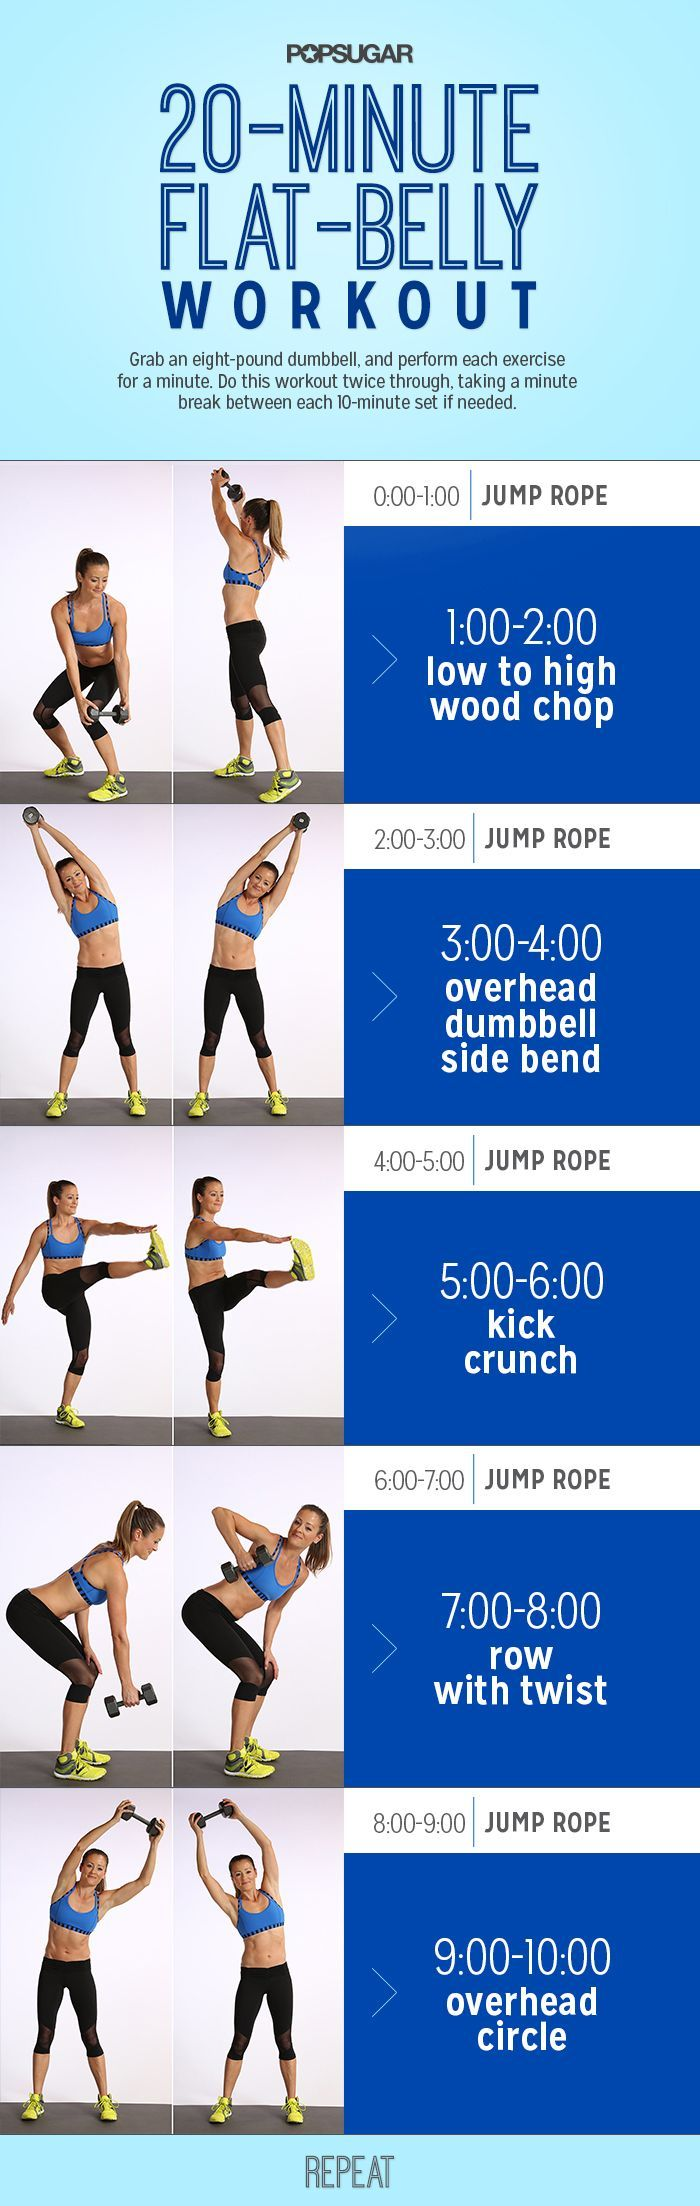 Combine cardio with core work to reap the flat-belly benefits of both types of sweat sessions. This workout alternates between jumping rope and standing ab moves, so you can tone your belly while burning serious calories in just 20 minutes!